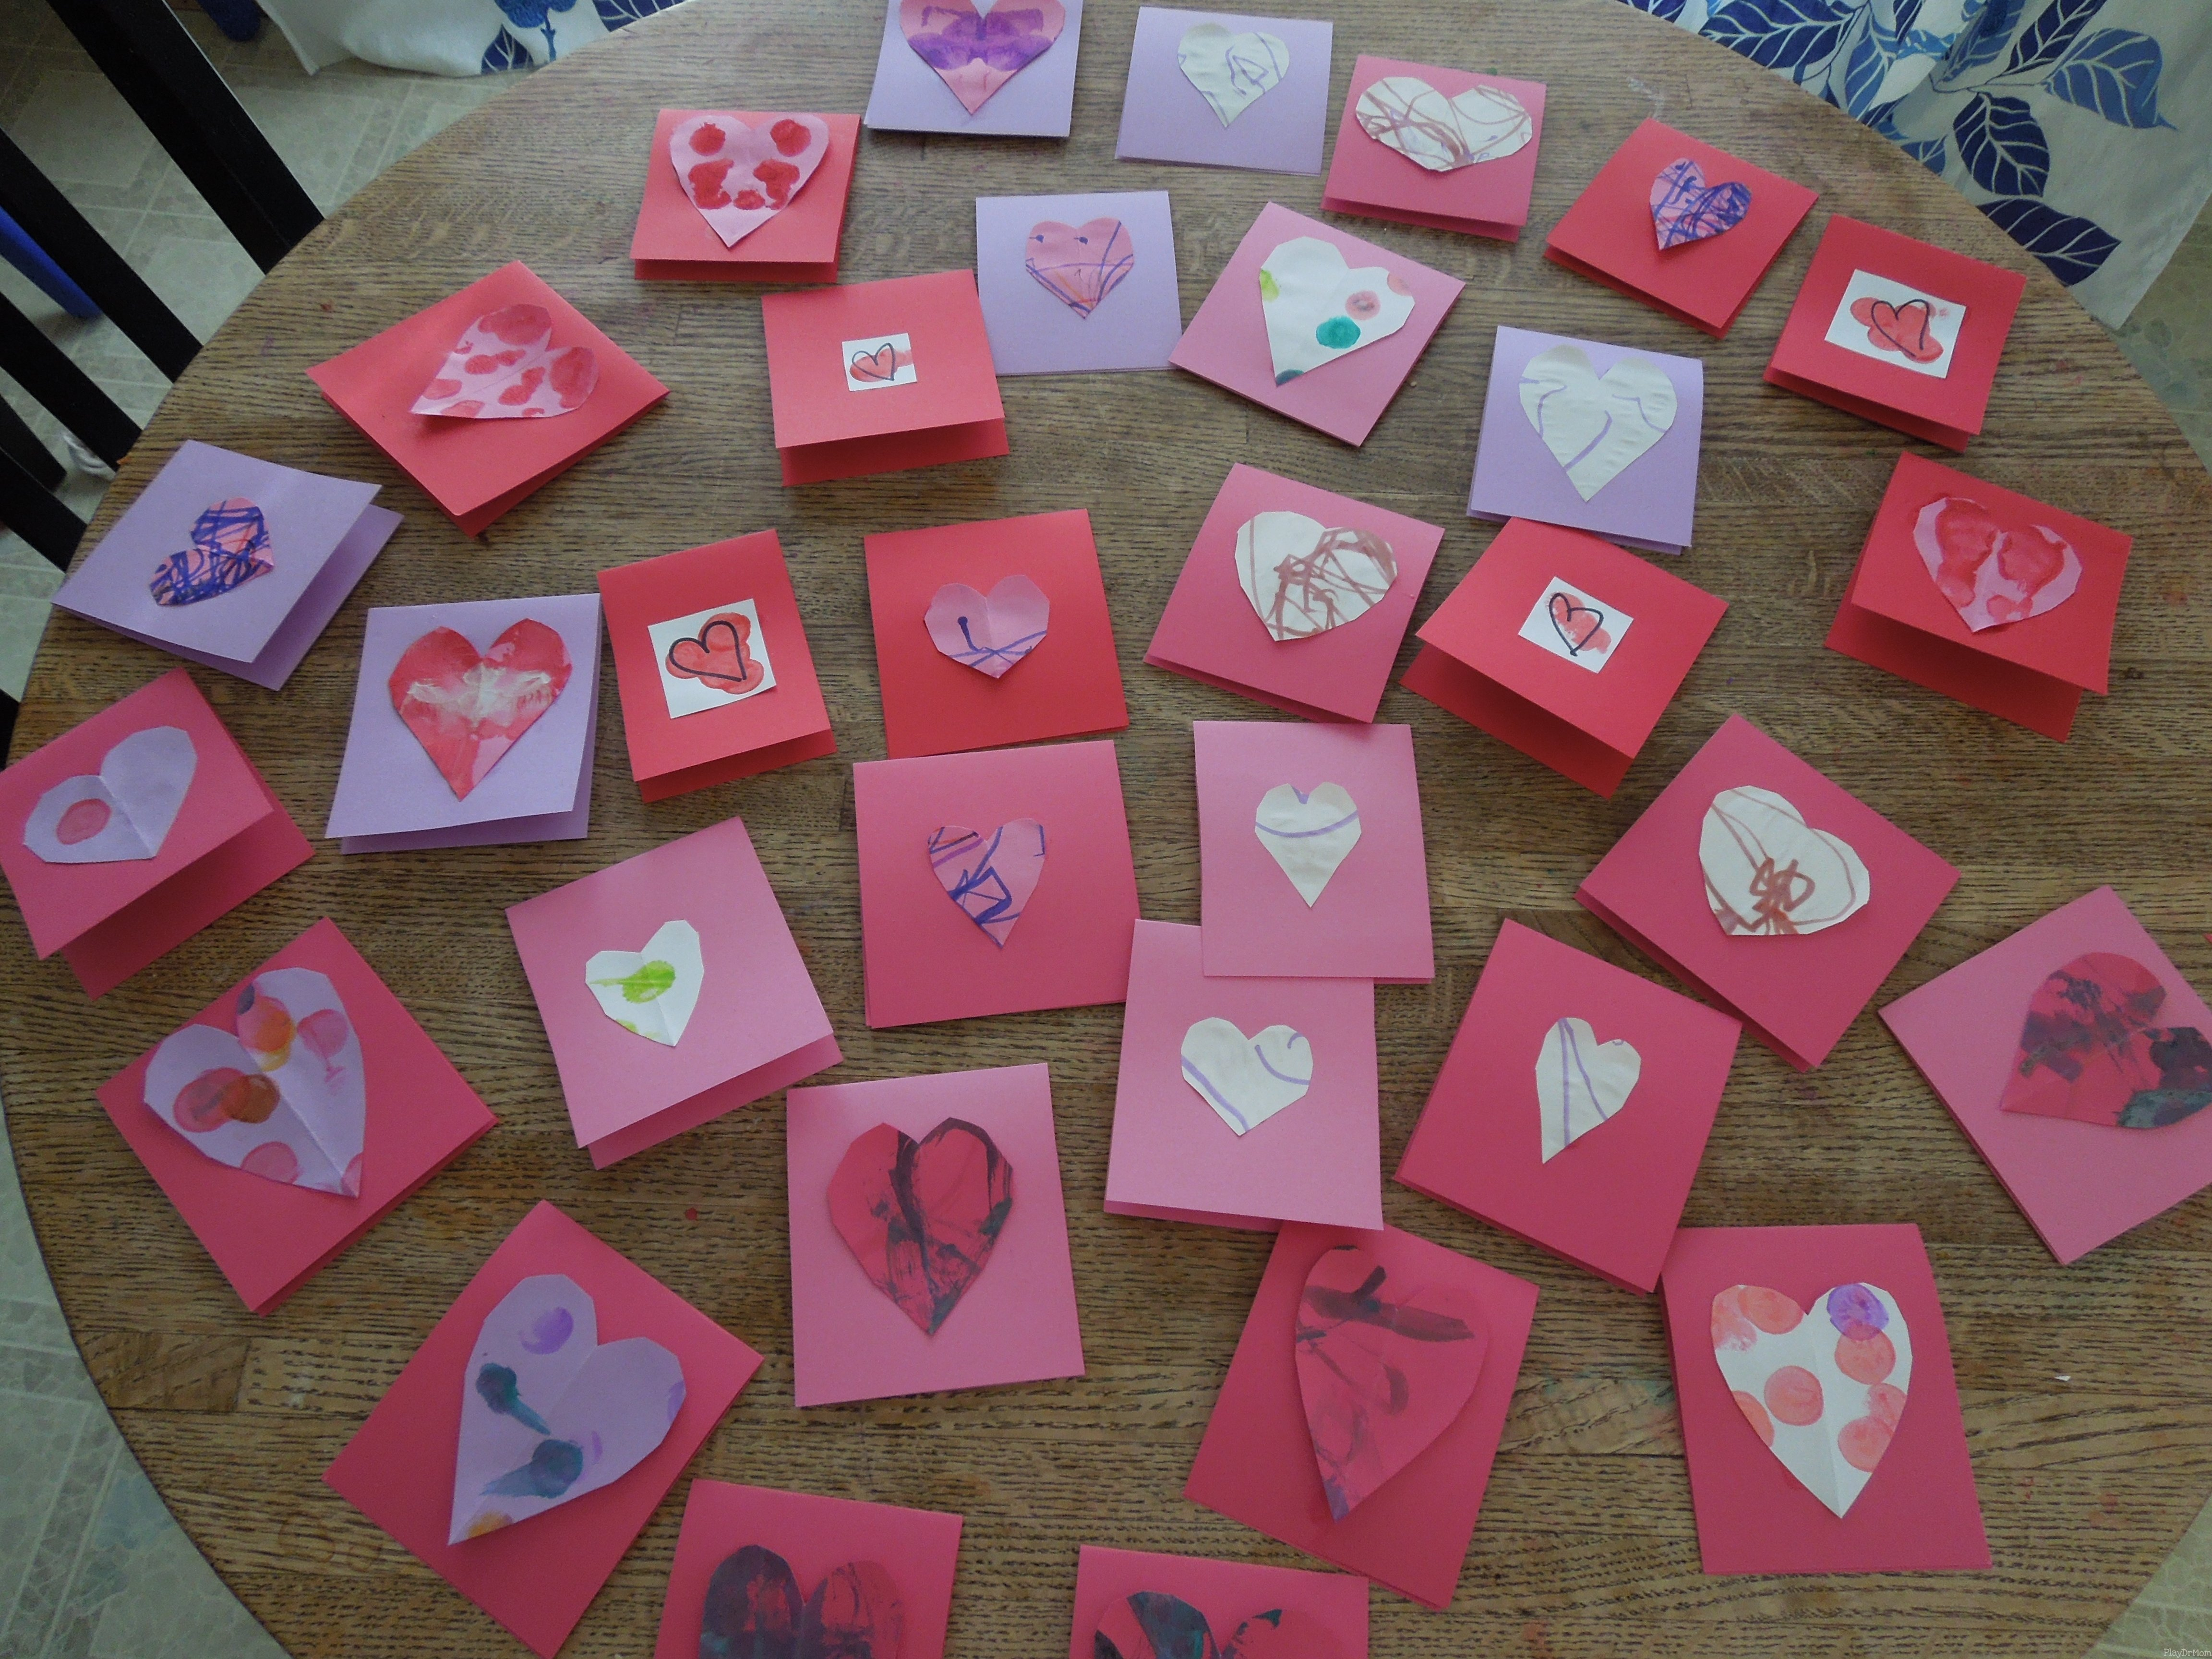 10 Attractive Valentine Card Ideas For Kids manly valentine card ideas kids valentine card ideas kids want to 2020